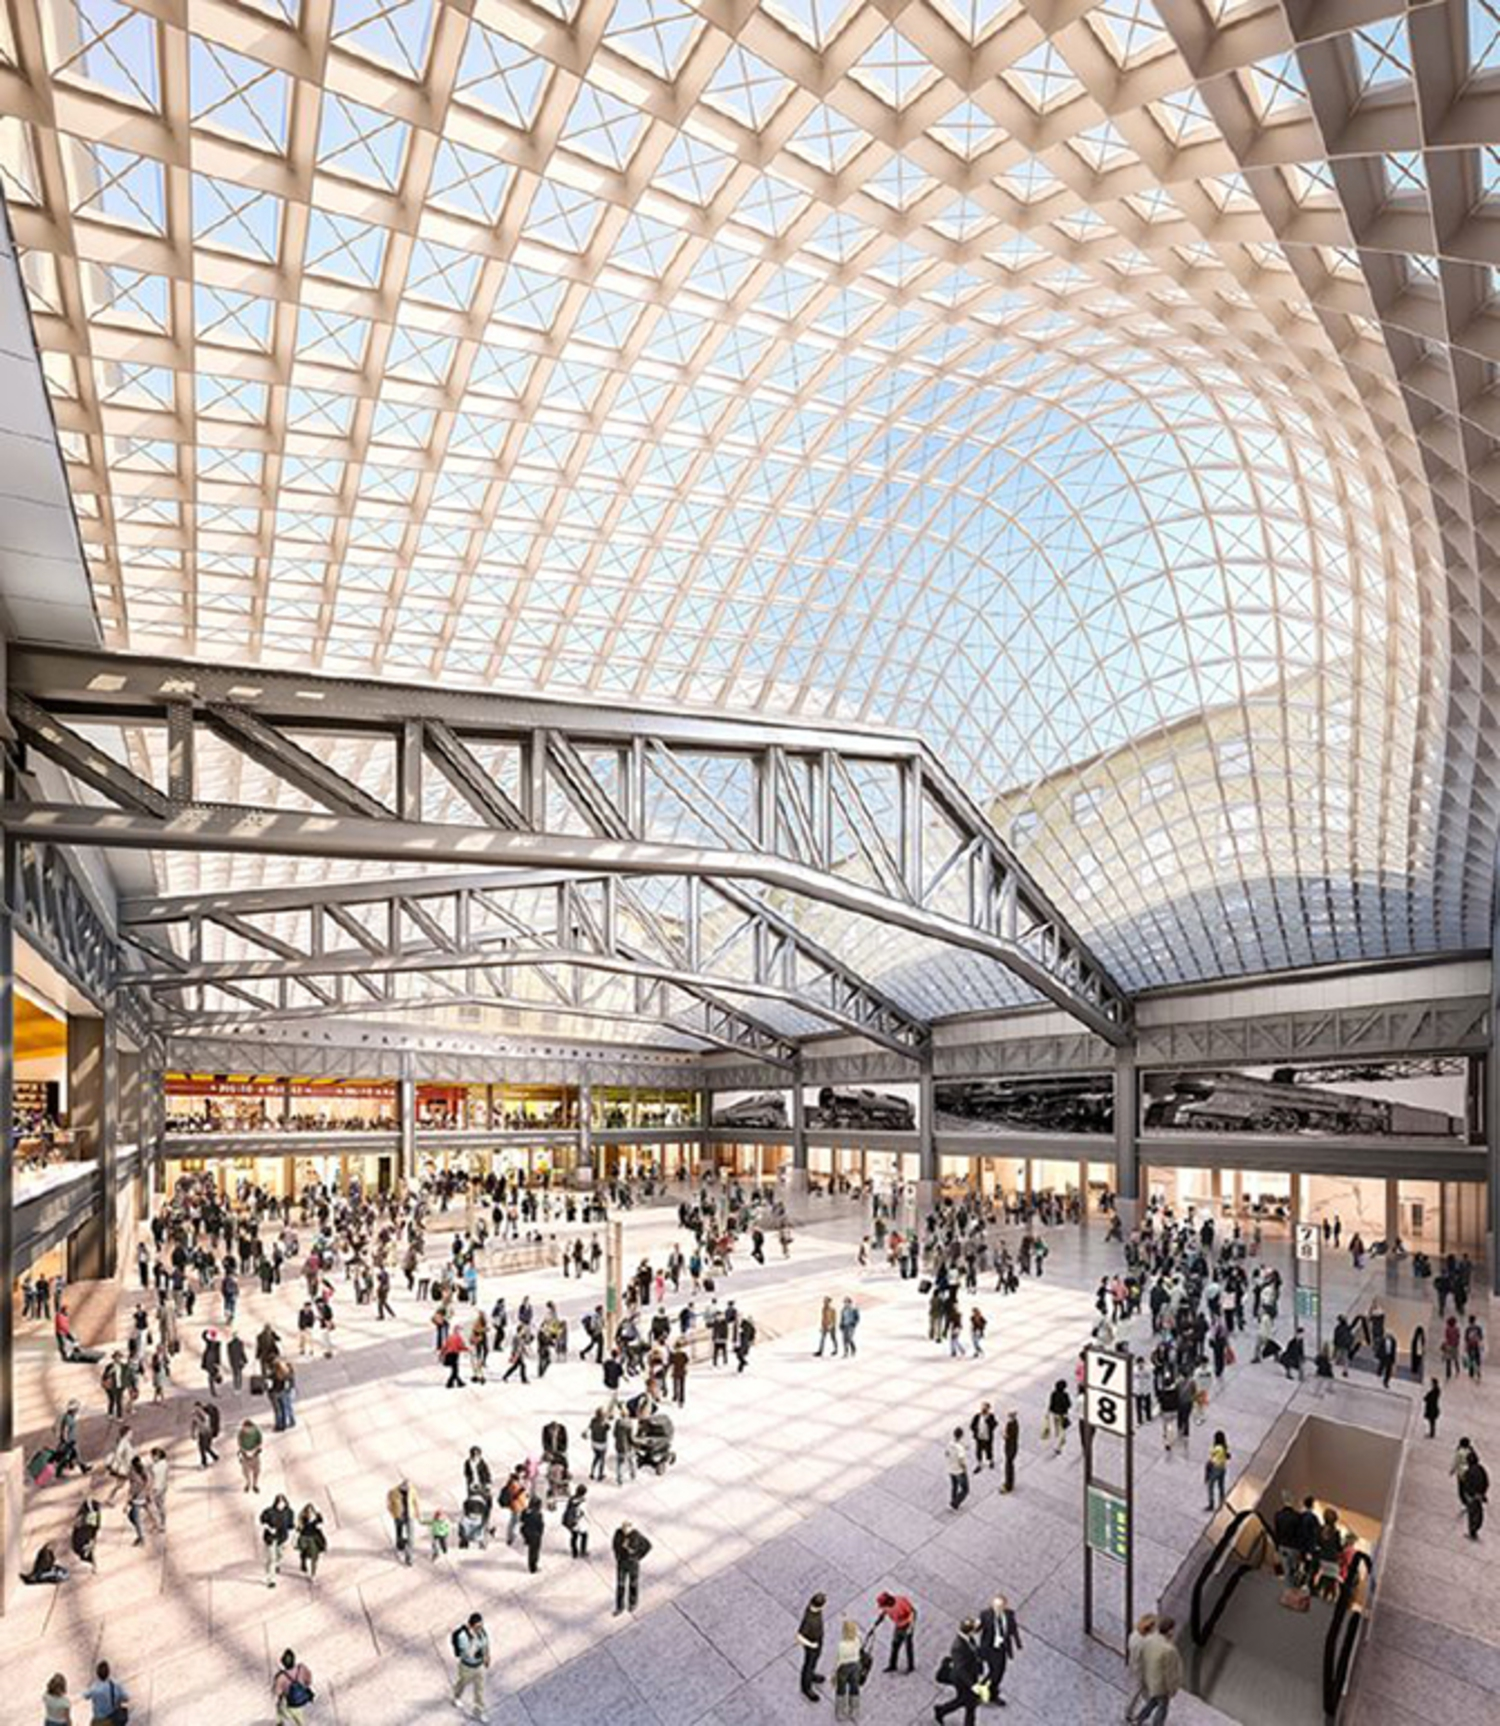 Numerous architecture firms have presented pitches for the proposed expansion—among them SOM, whose submission showcases a 486,000-square-foot waiting hall capped with a curved glass roof, attached to a shopping gallery and dining arcade.